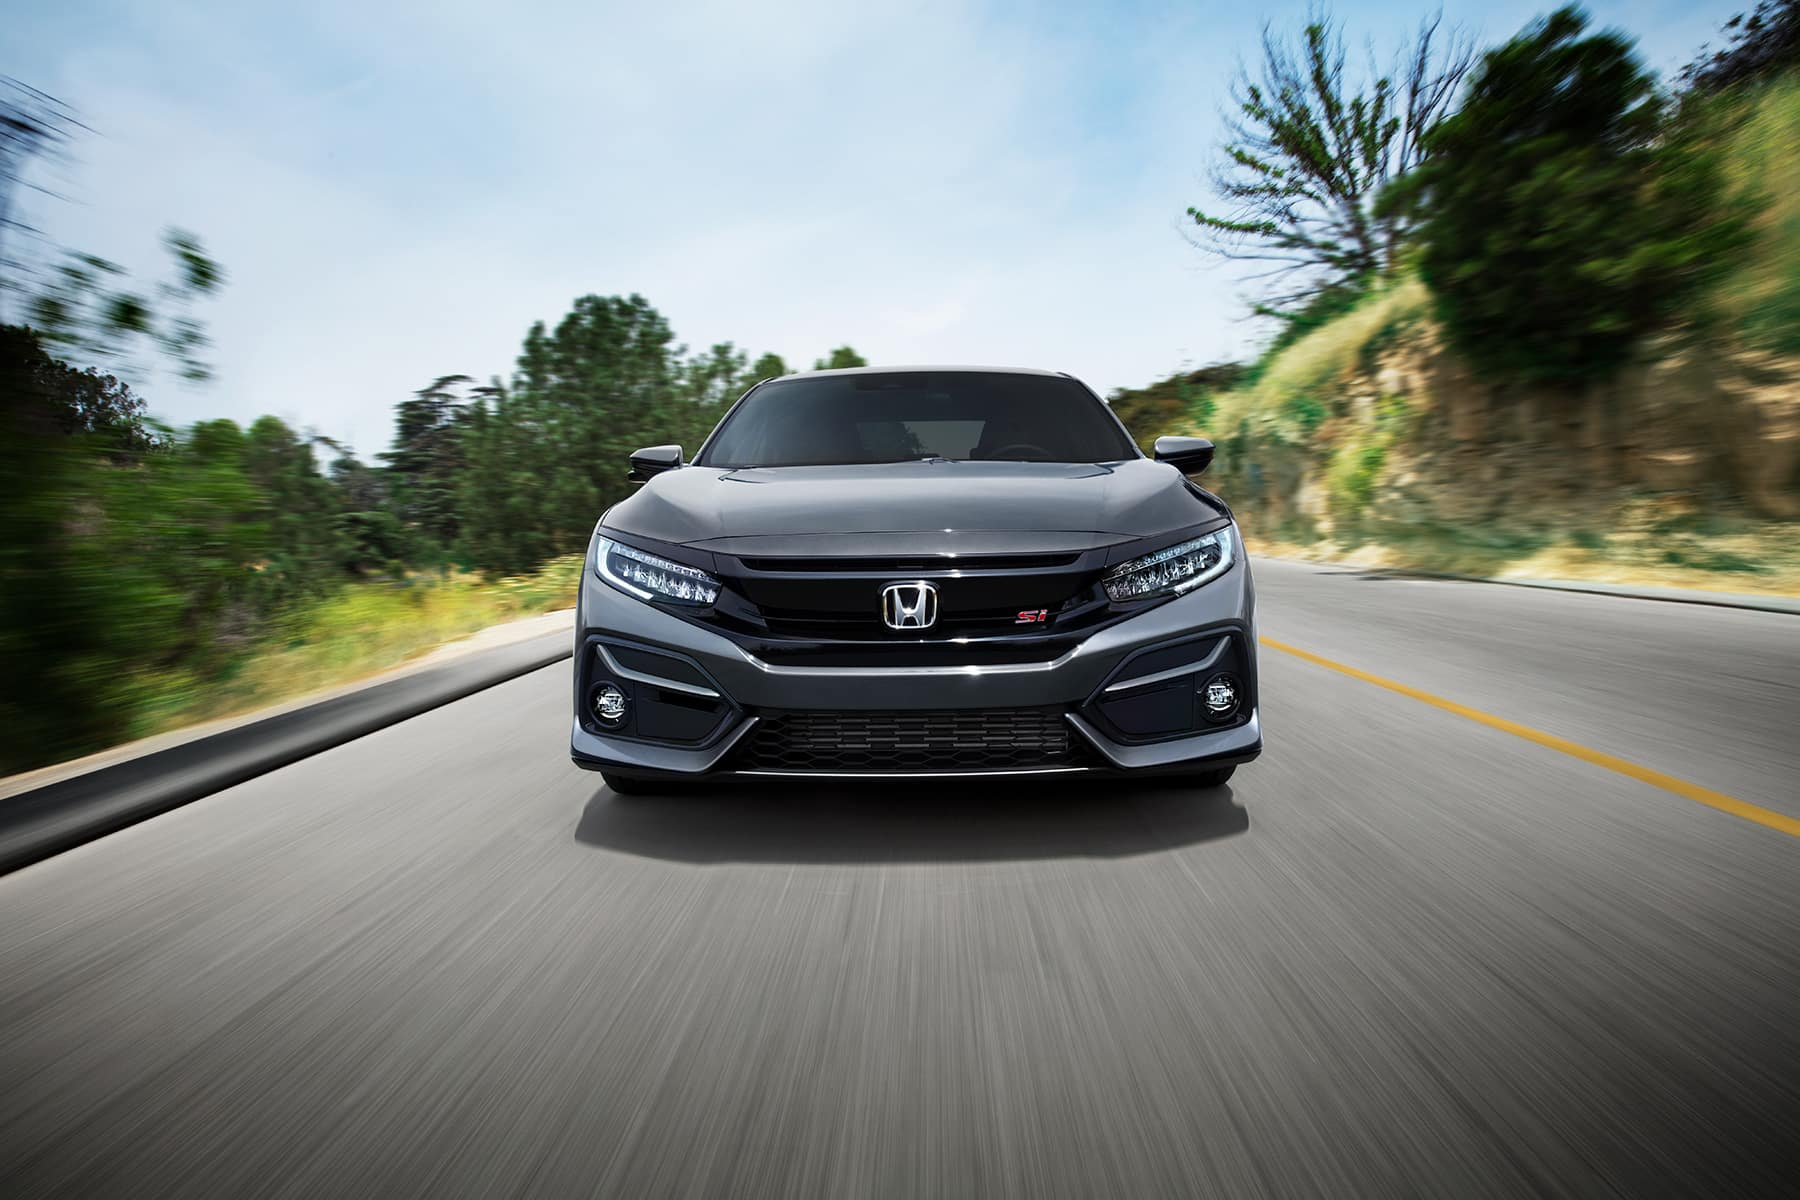 comparison-of-the-2020-Civic-and-the-2020-Accord-Massachusetts | Gray 2020 civic front view